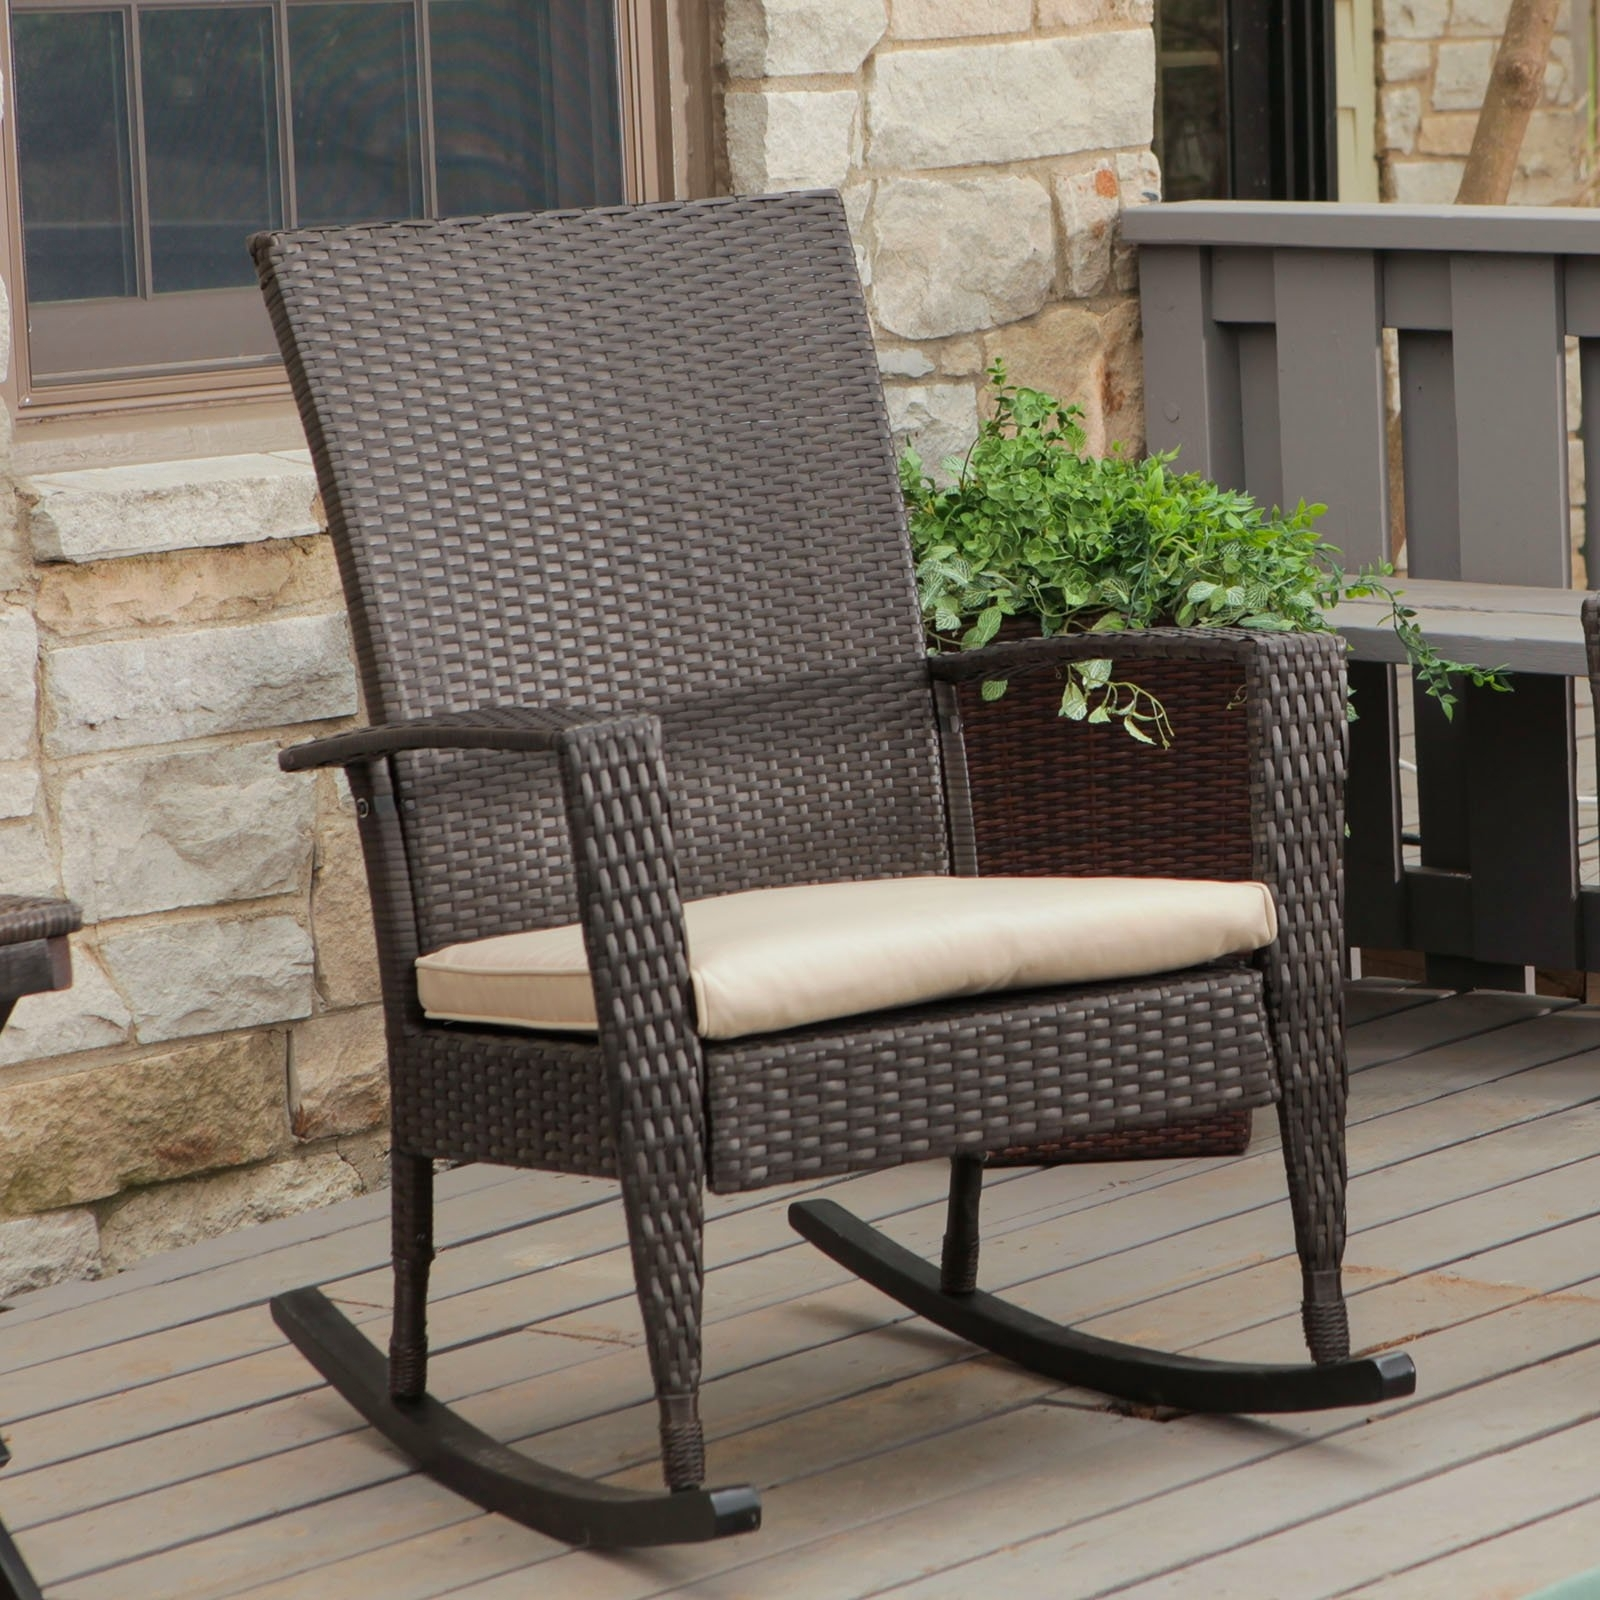 Decorating Modern Lawn Chairs Modern Balcony Furniture Modern Patio Regarding White Resin Patio Rocking Chairs (#4 of 15)